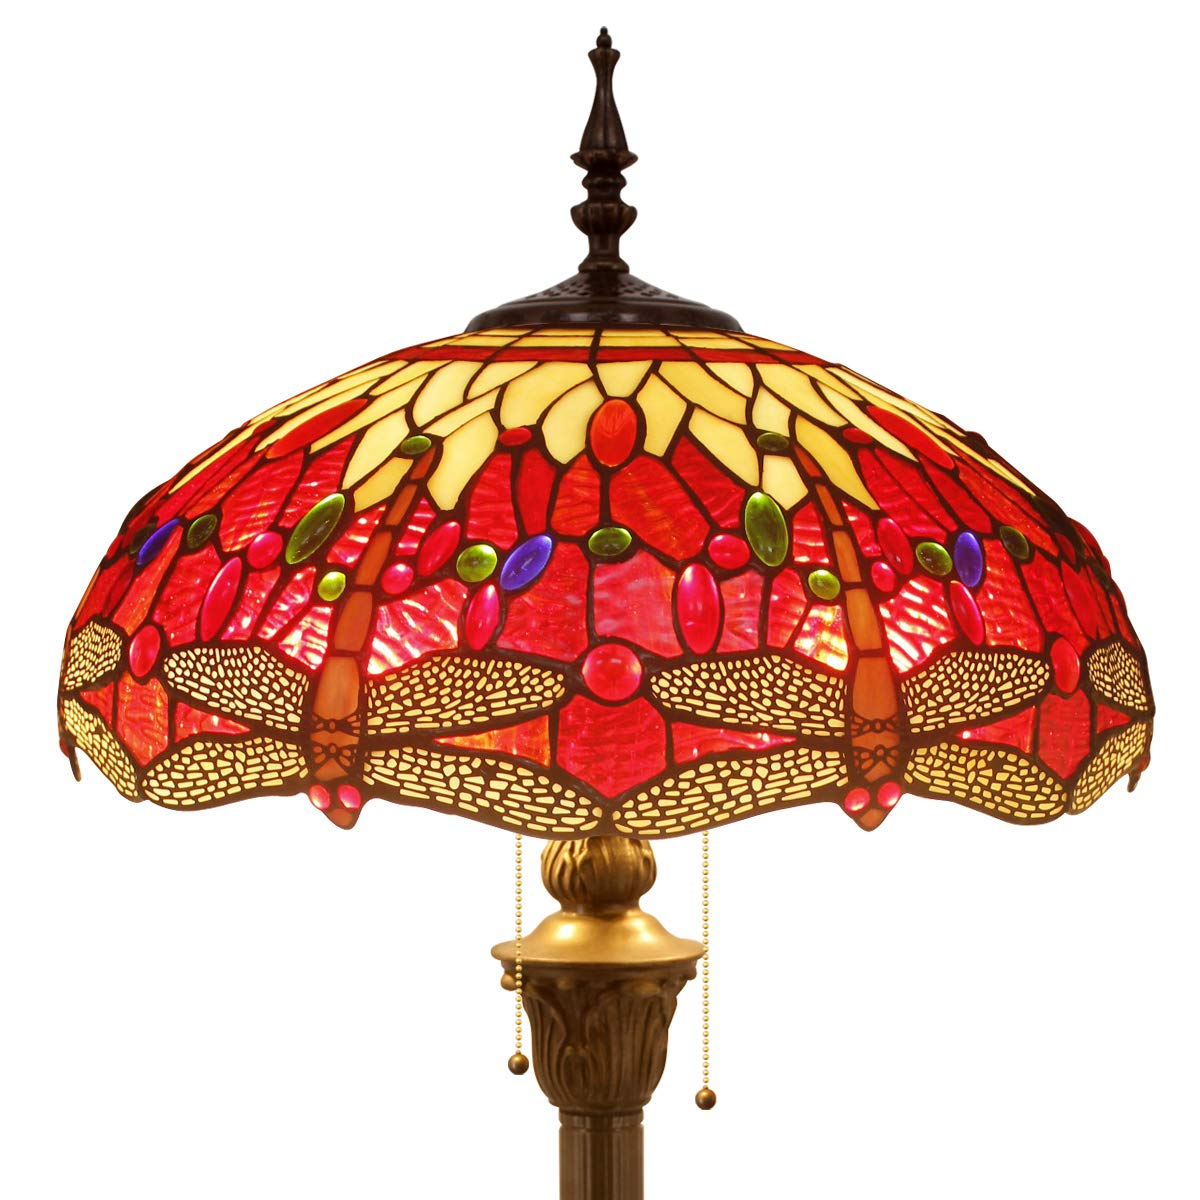 Tiffany Style Floor Standing Lamp 64 Inch Tall Red Yellow Stained Glass Shade Crystal Bead Dragonfly 2 Light Antique Base for Bedroom Living Room Reading Lighting Table Set S328 WERFACTORY by WERFACTORY